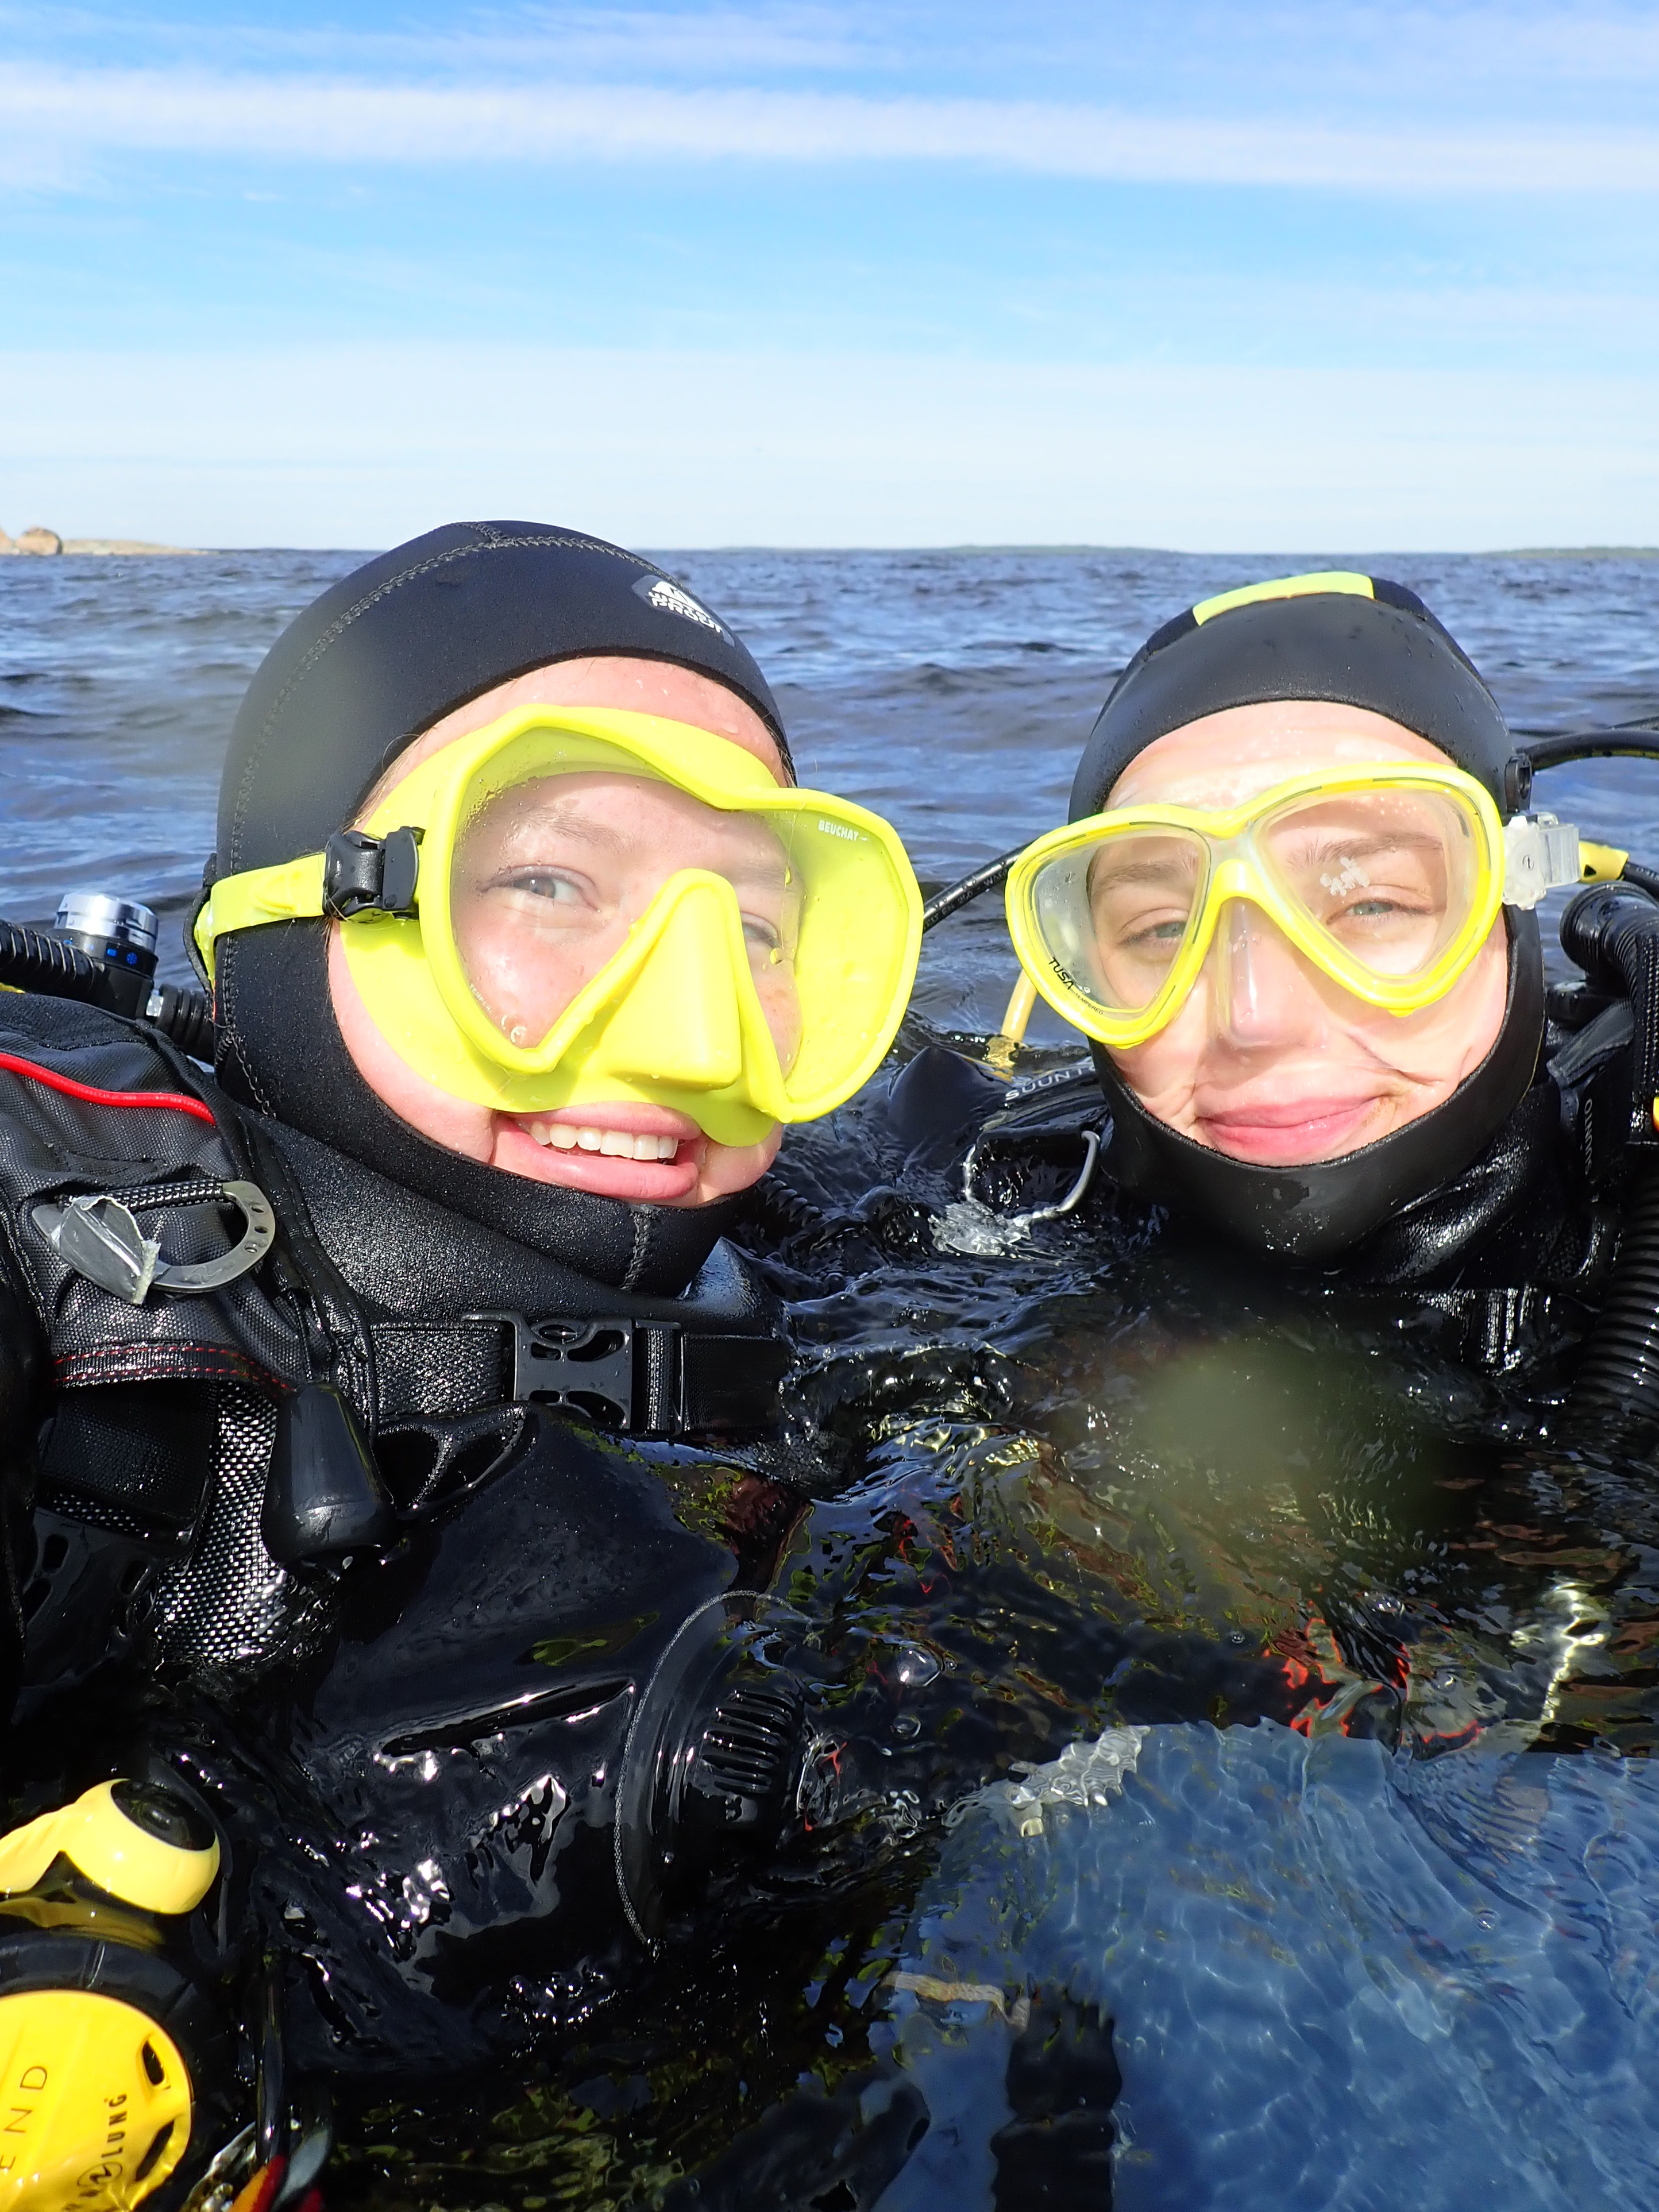 Two happy divers on the water.